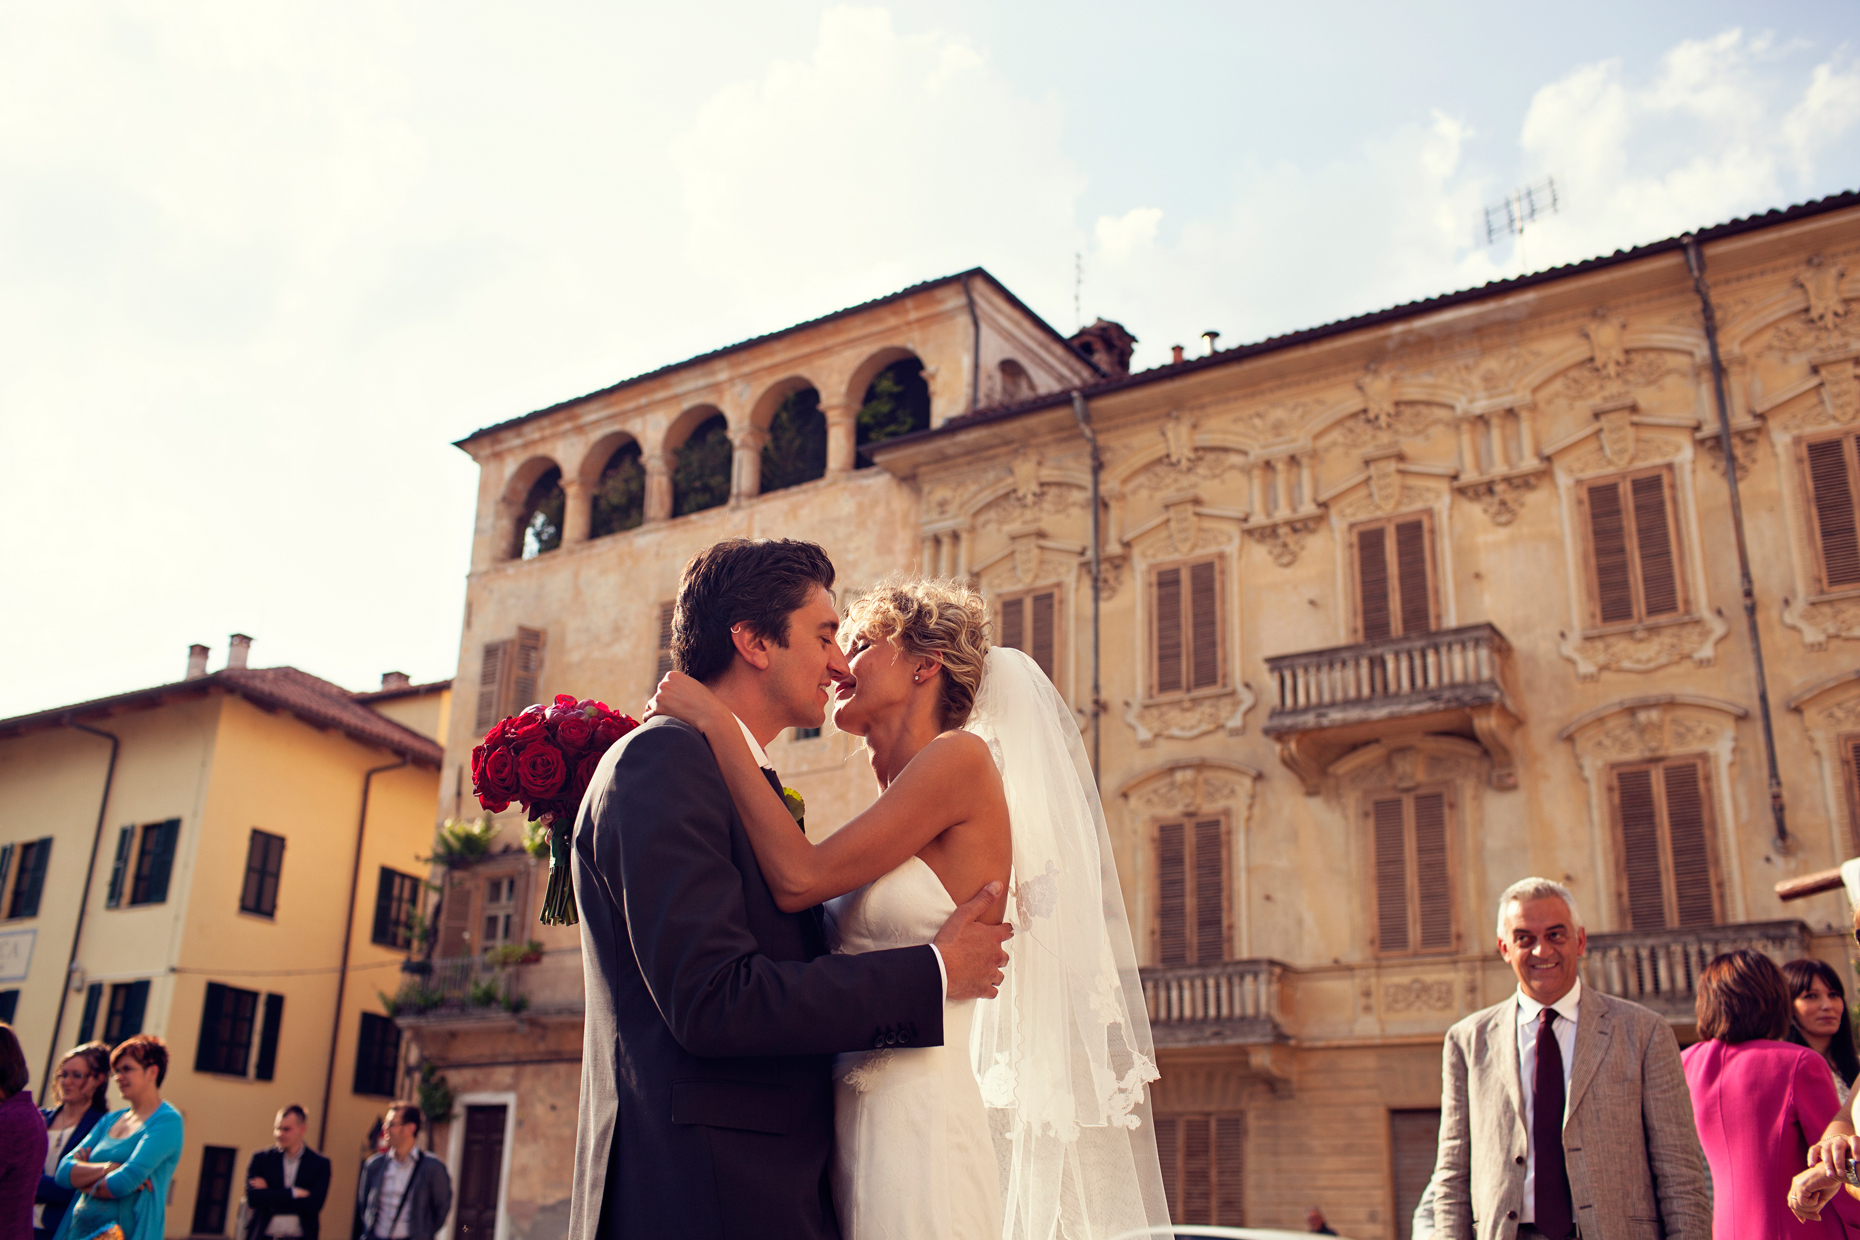 Destination Wedding Photography_Italy_JamiSaunders_057